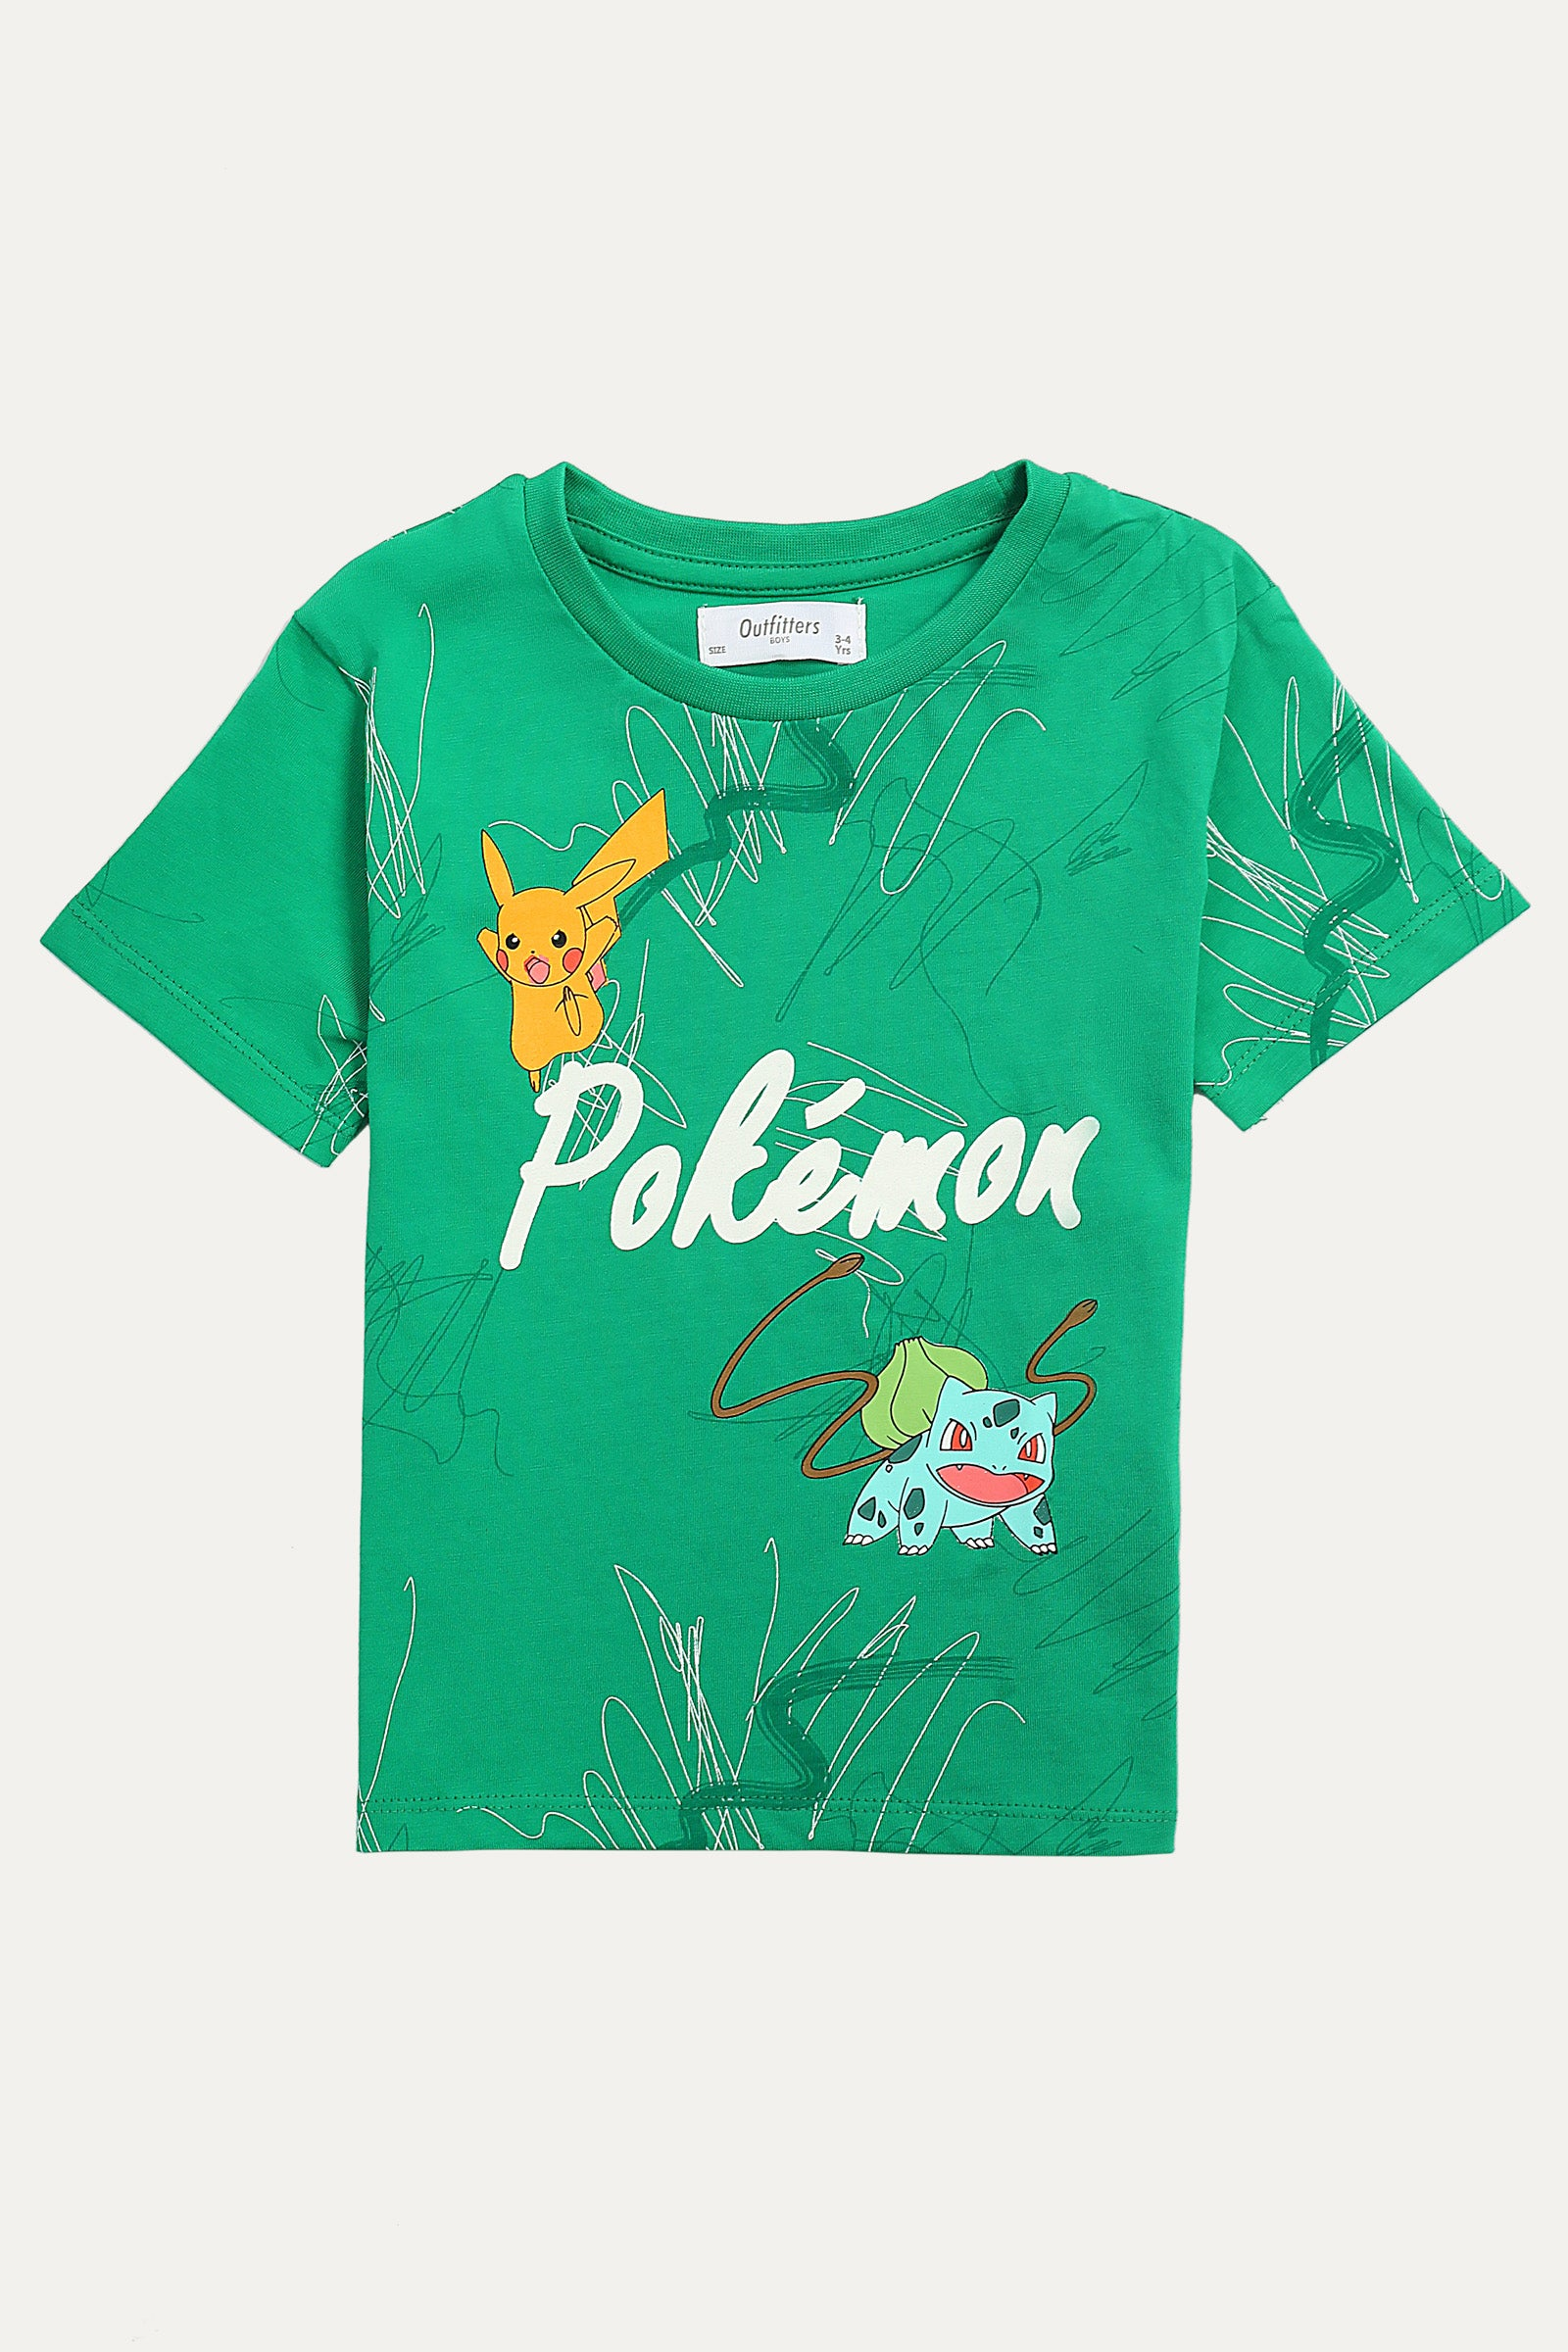 Pokemon' Printed T-Shirt